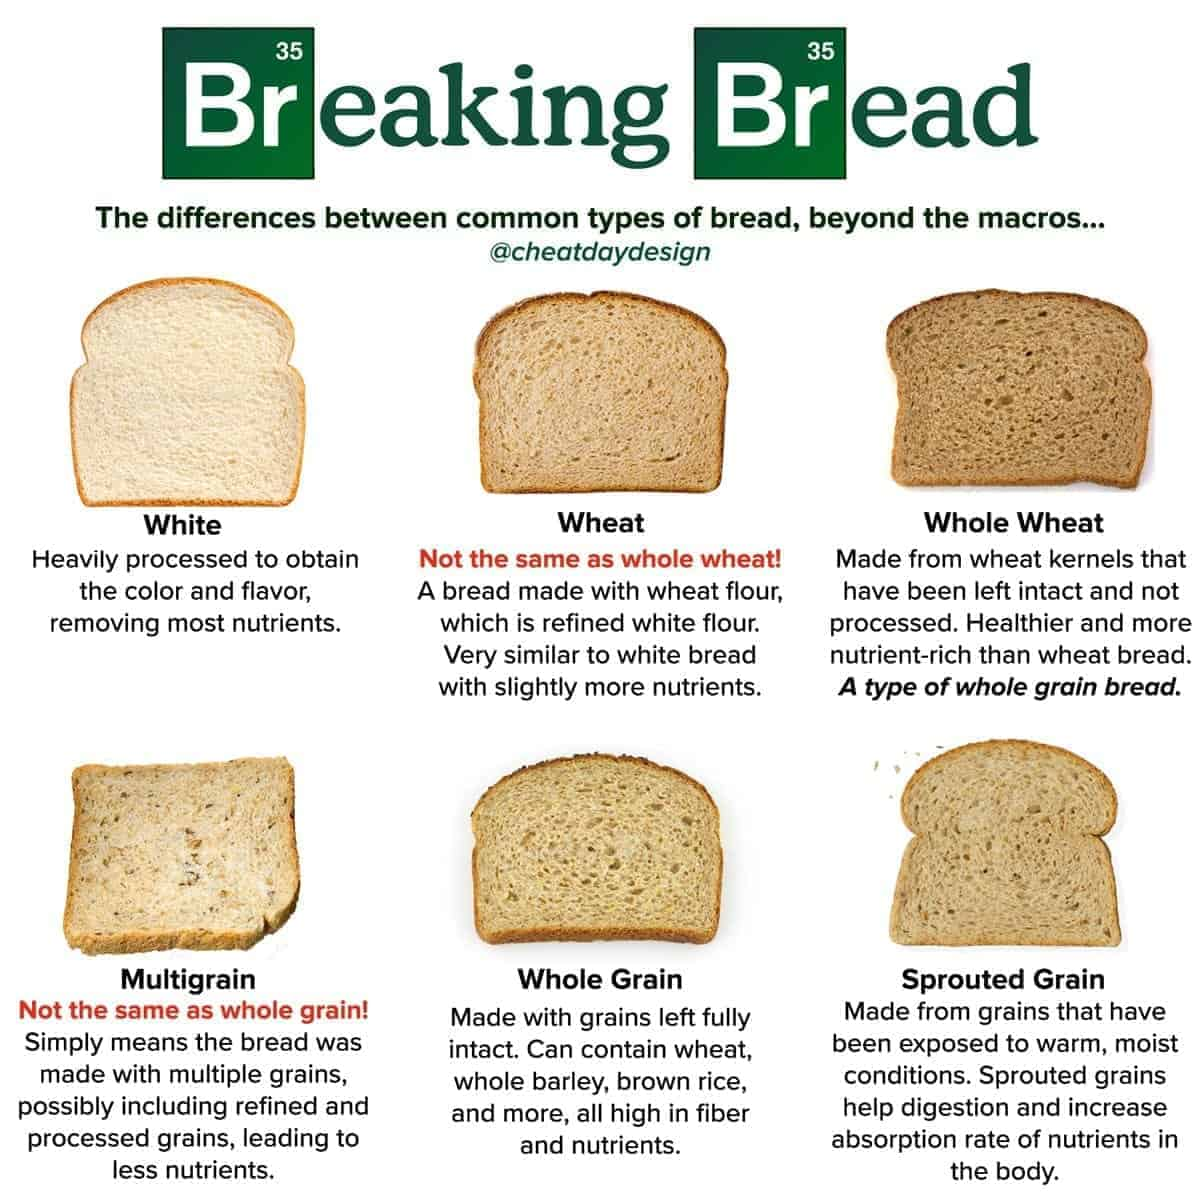 Comparing different types of bread